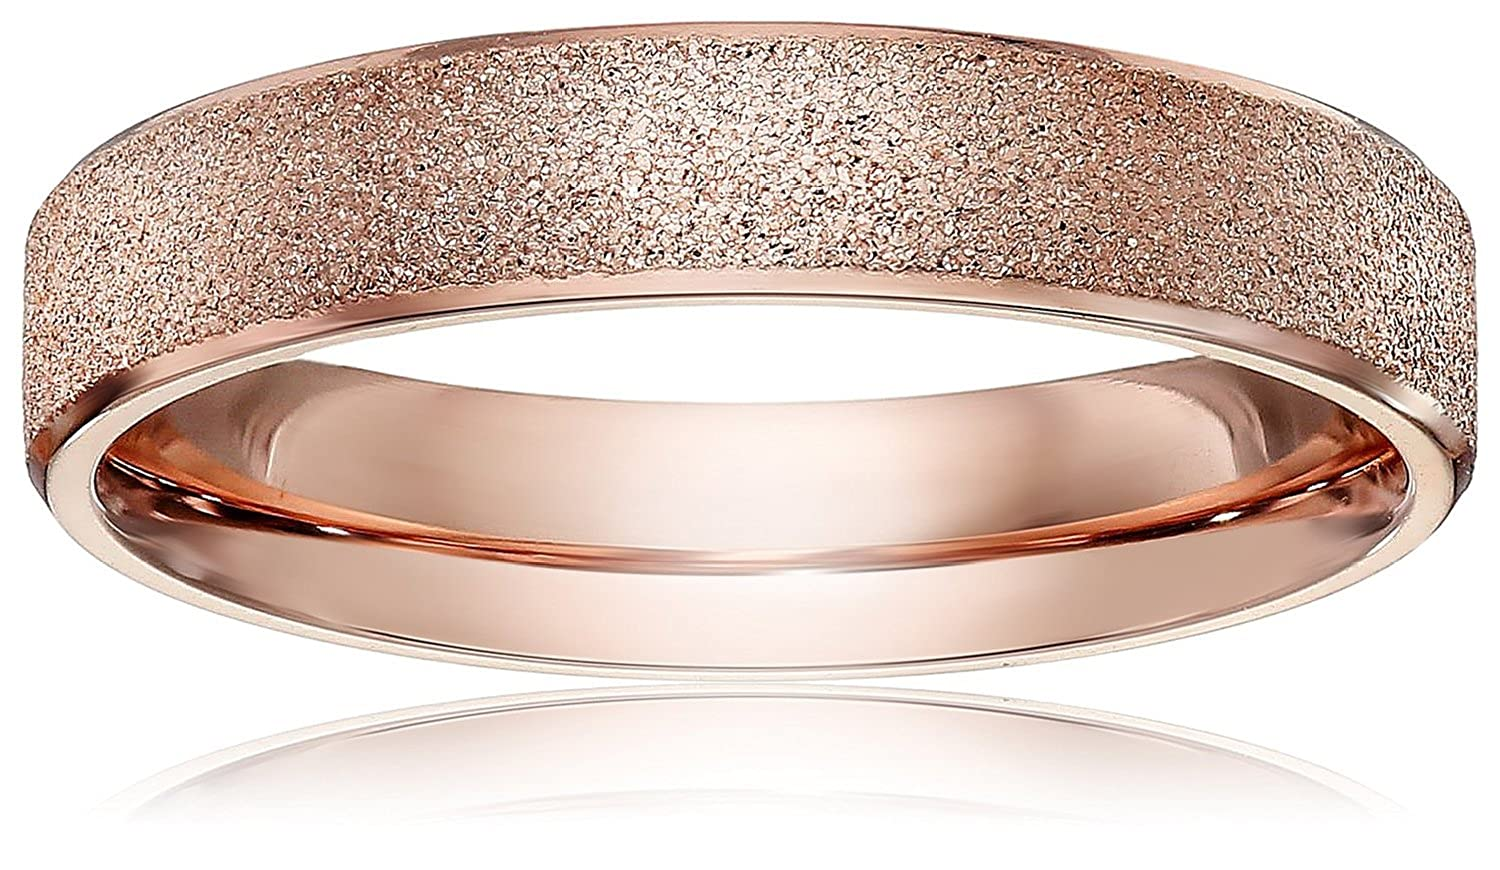 LOVE Beauties Brand New 4mm Women's Titanium Rose Gold Wedding Band Ring (Size Selectable) VP-ELY4-VMLM